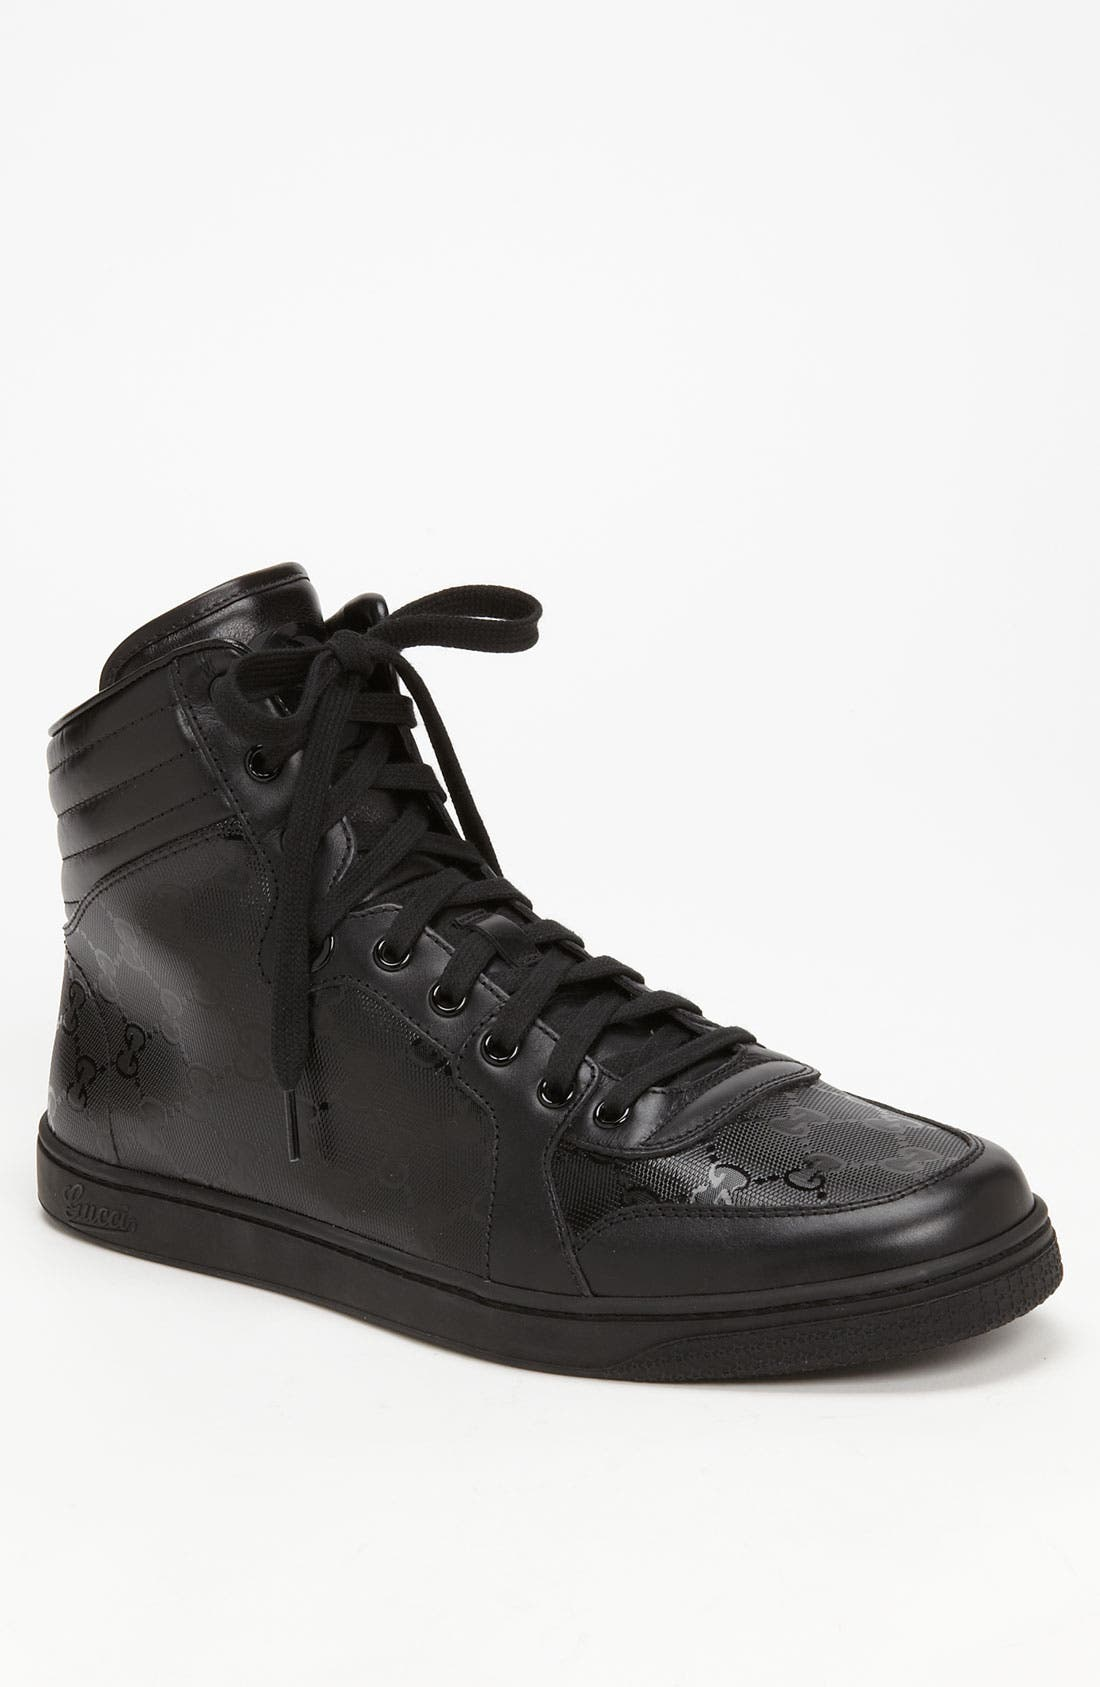 Main Image - Gucci 'Coda' High Top Sneaker